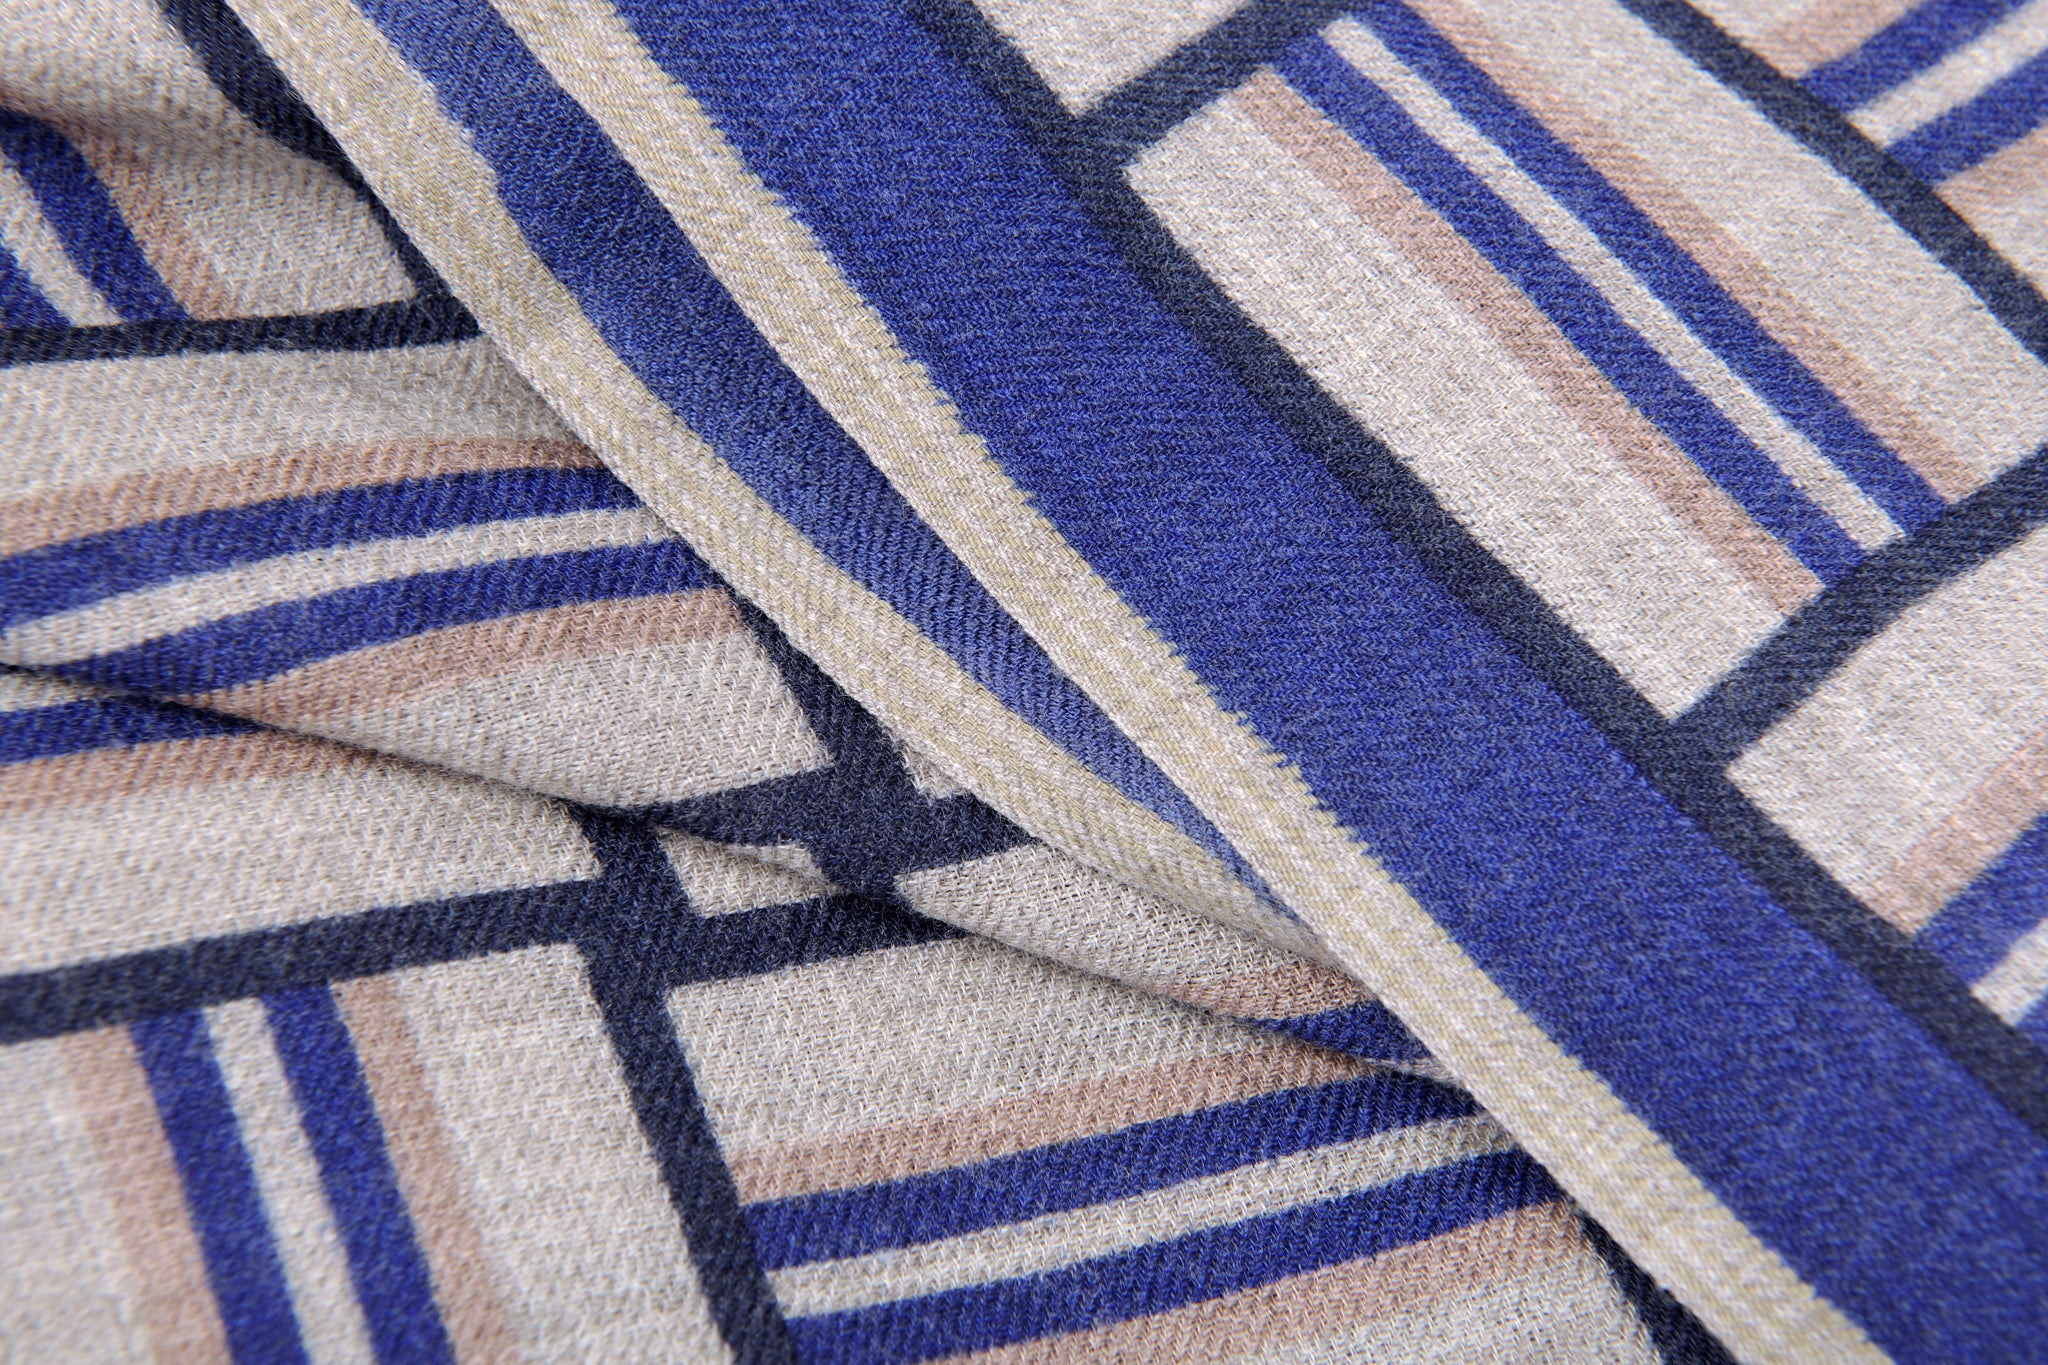 Moismont :: Scarf 460, Basketweave, Japan Blue